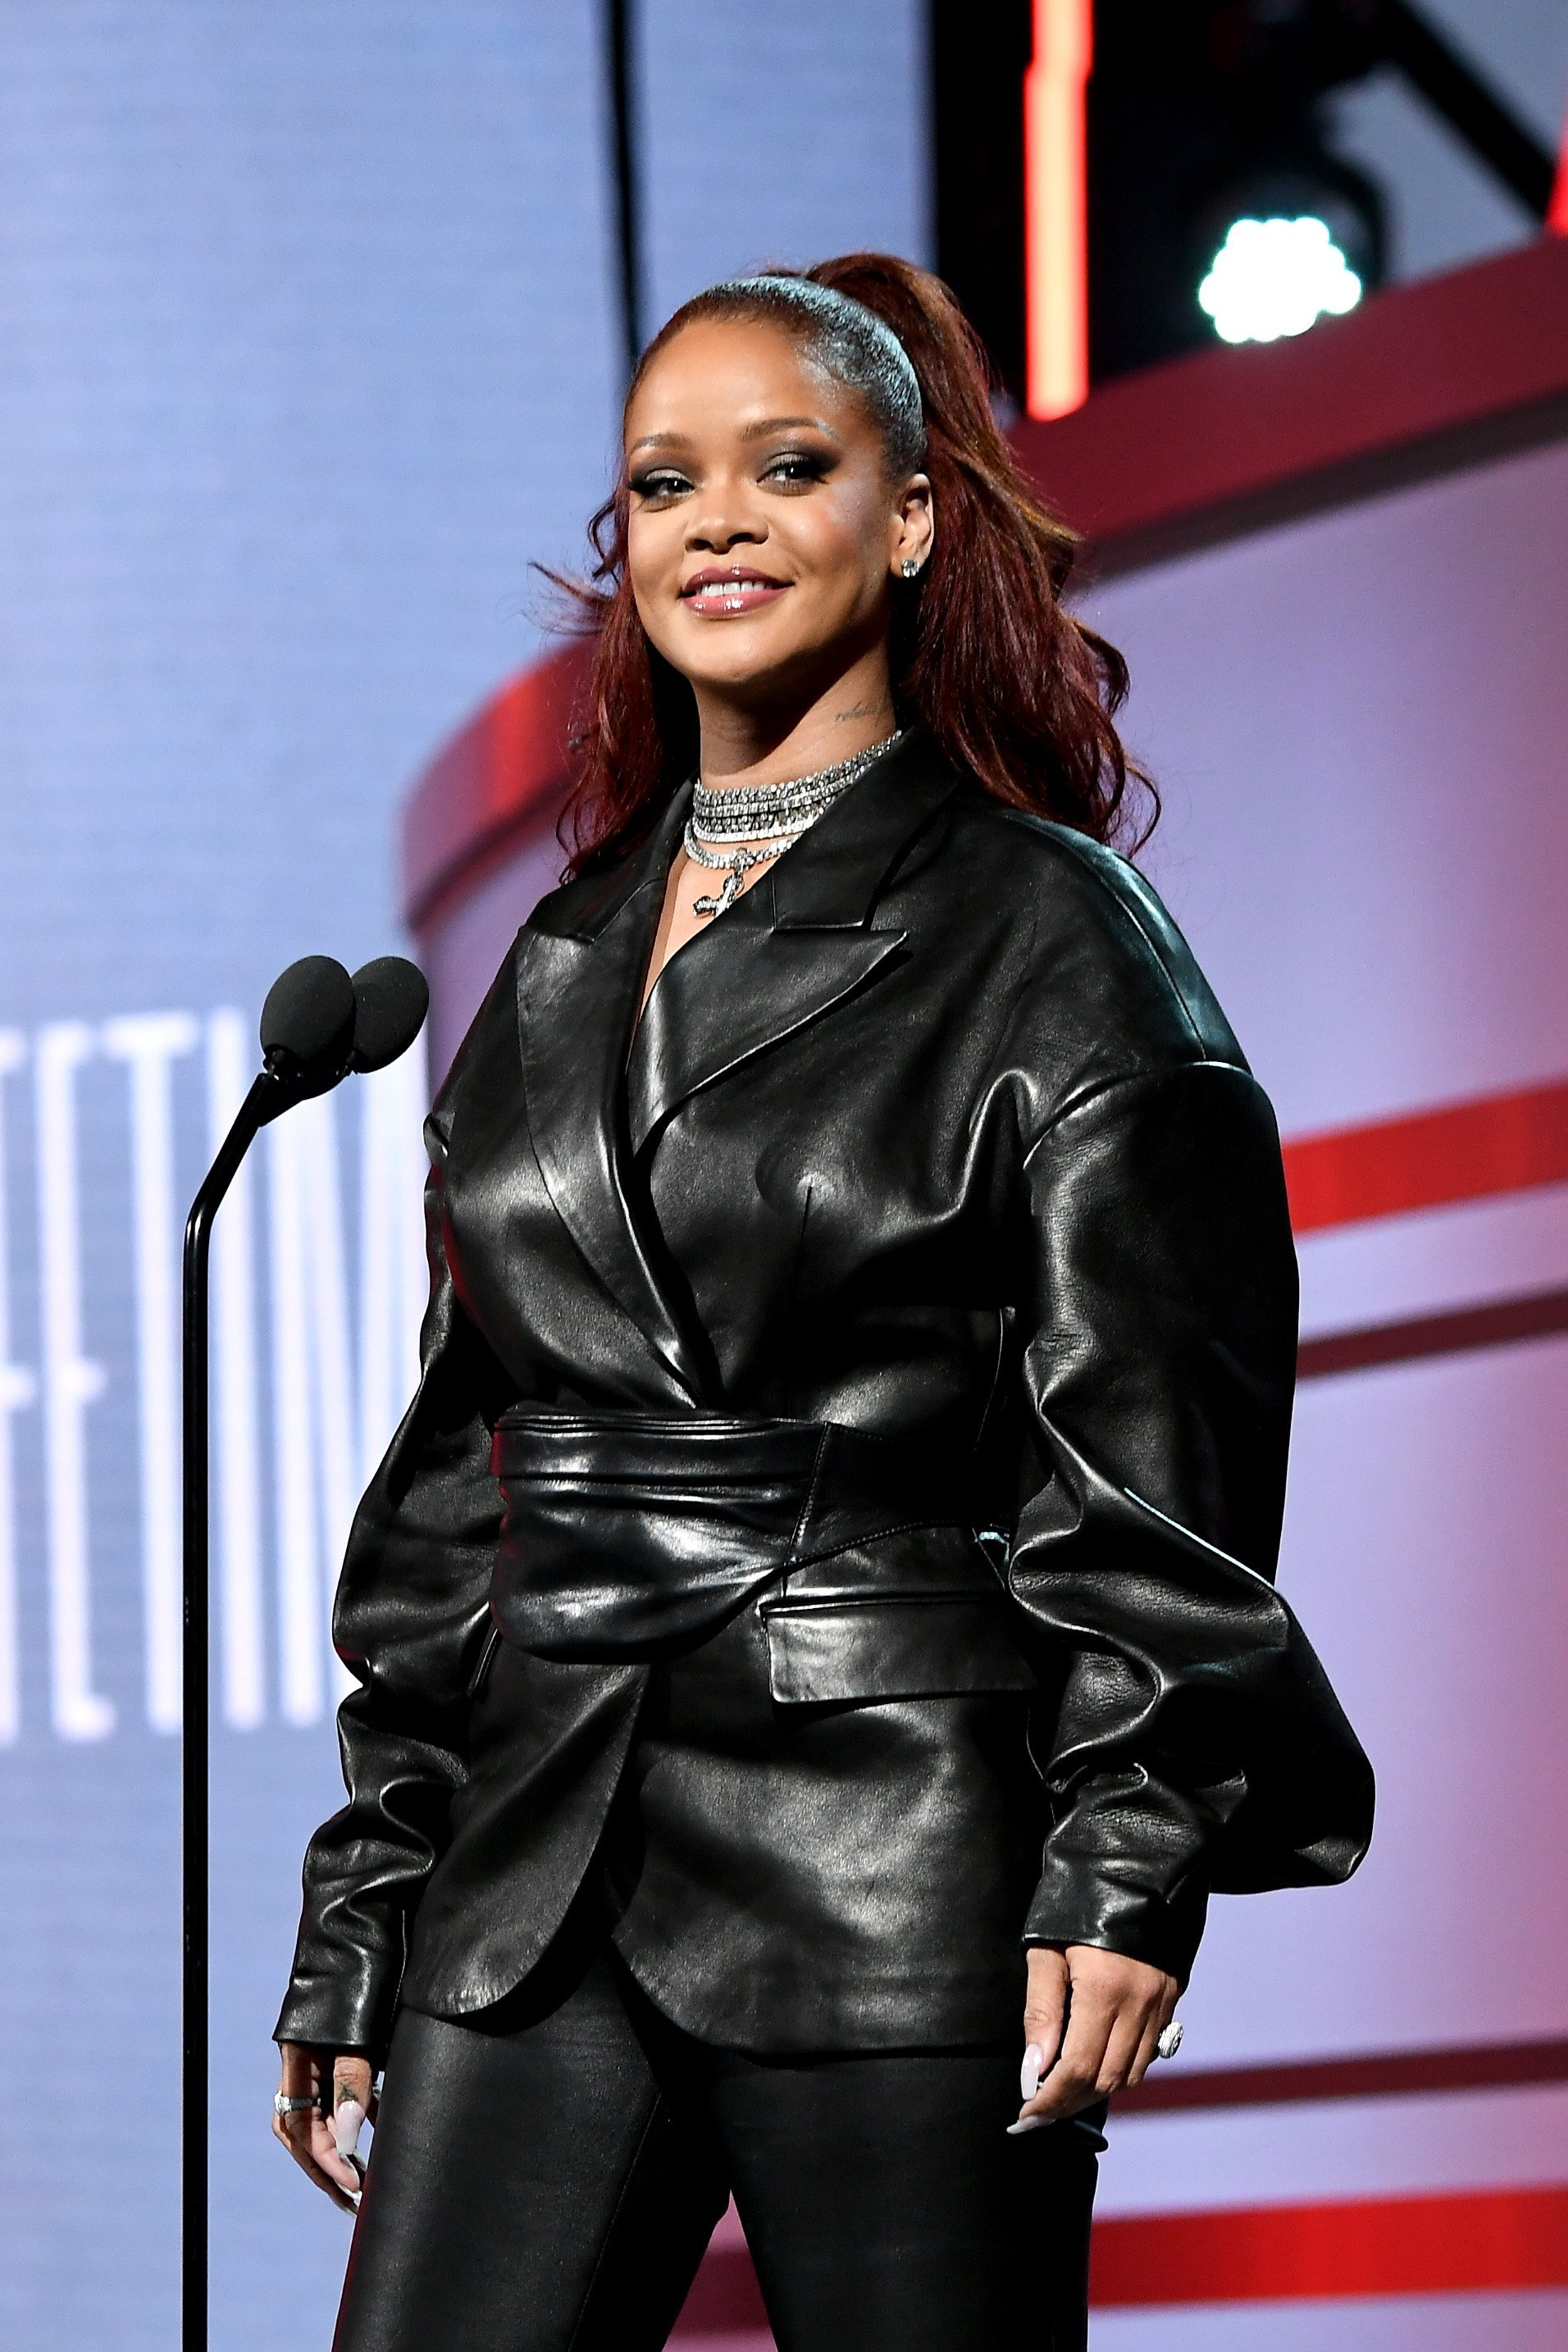 Singer Rihanna at the 2019 BET Awards. | Photo: Getty Images